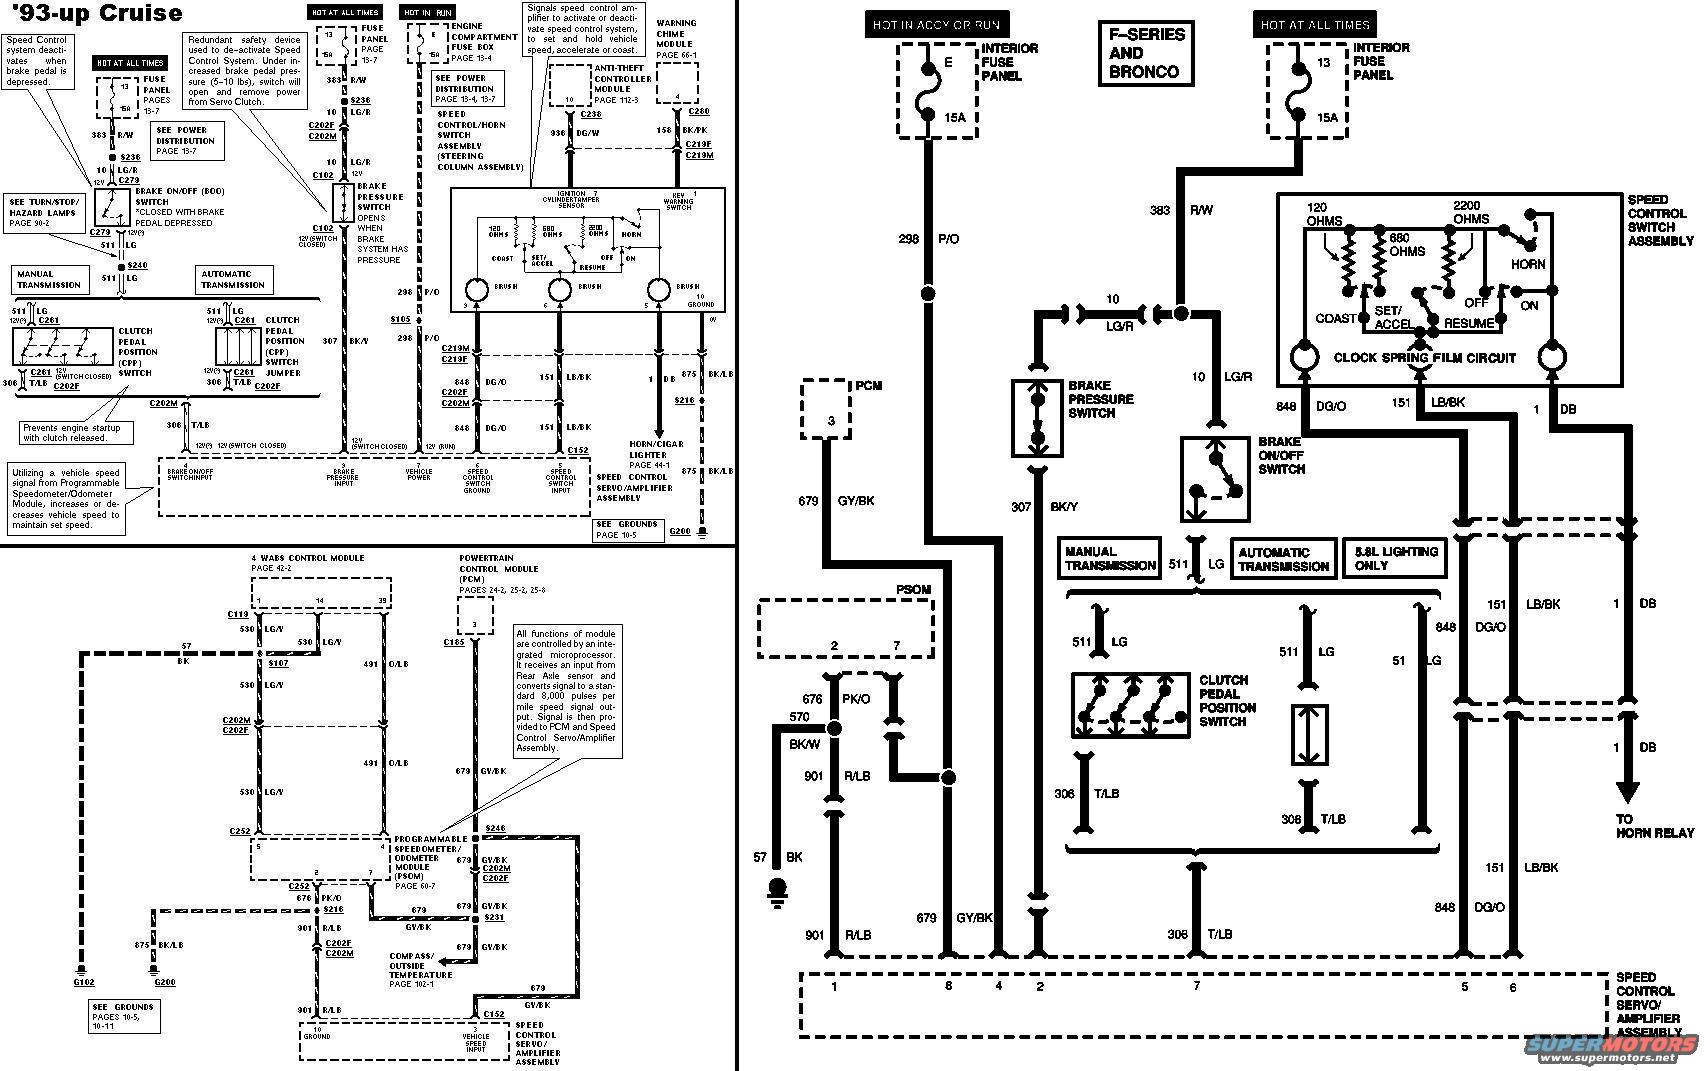 cruisee 93 ford f250 cruise control problem ford truck enthusiasts forums ford cruise control wiring diagram at gsmx.co